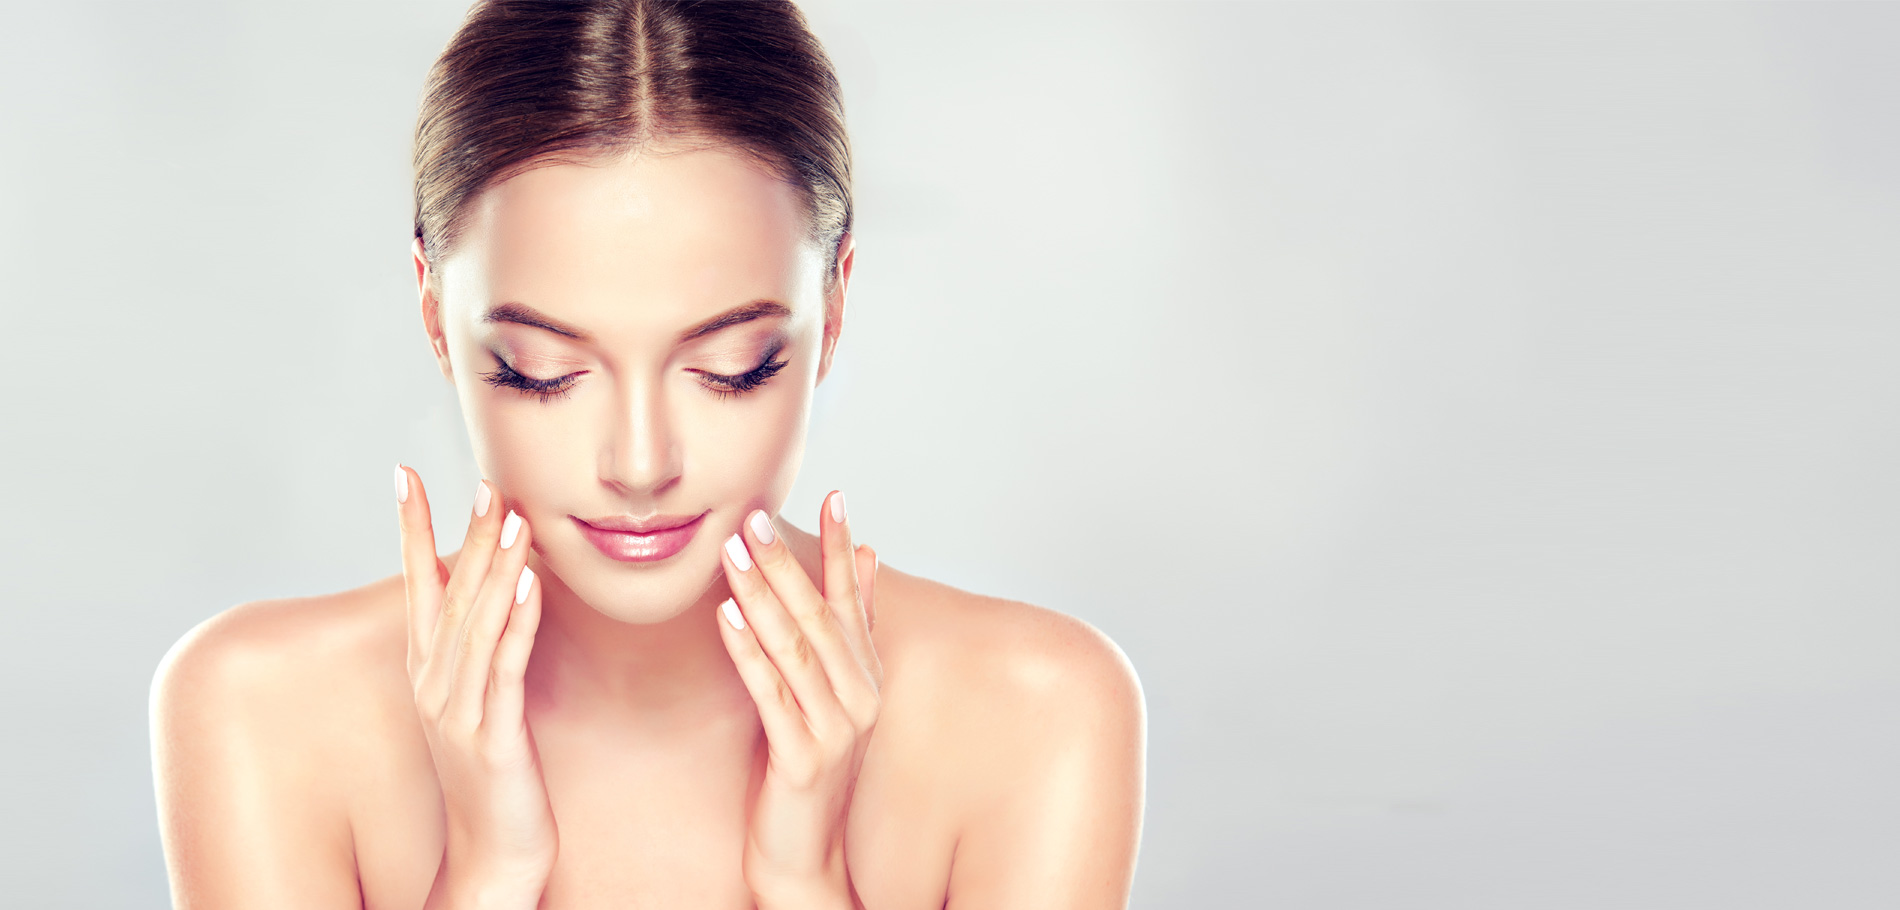 Medical skincare provided by a board certified Nurse Practitioner with 7+ years experience in aesthetics